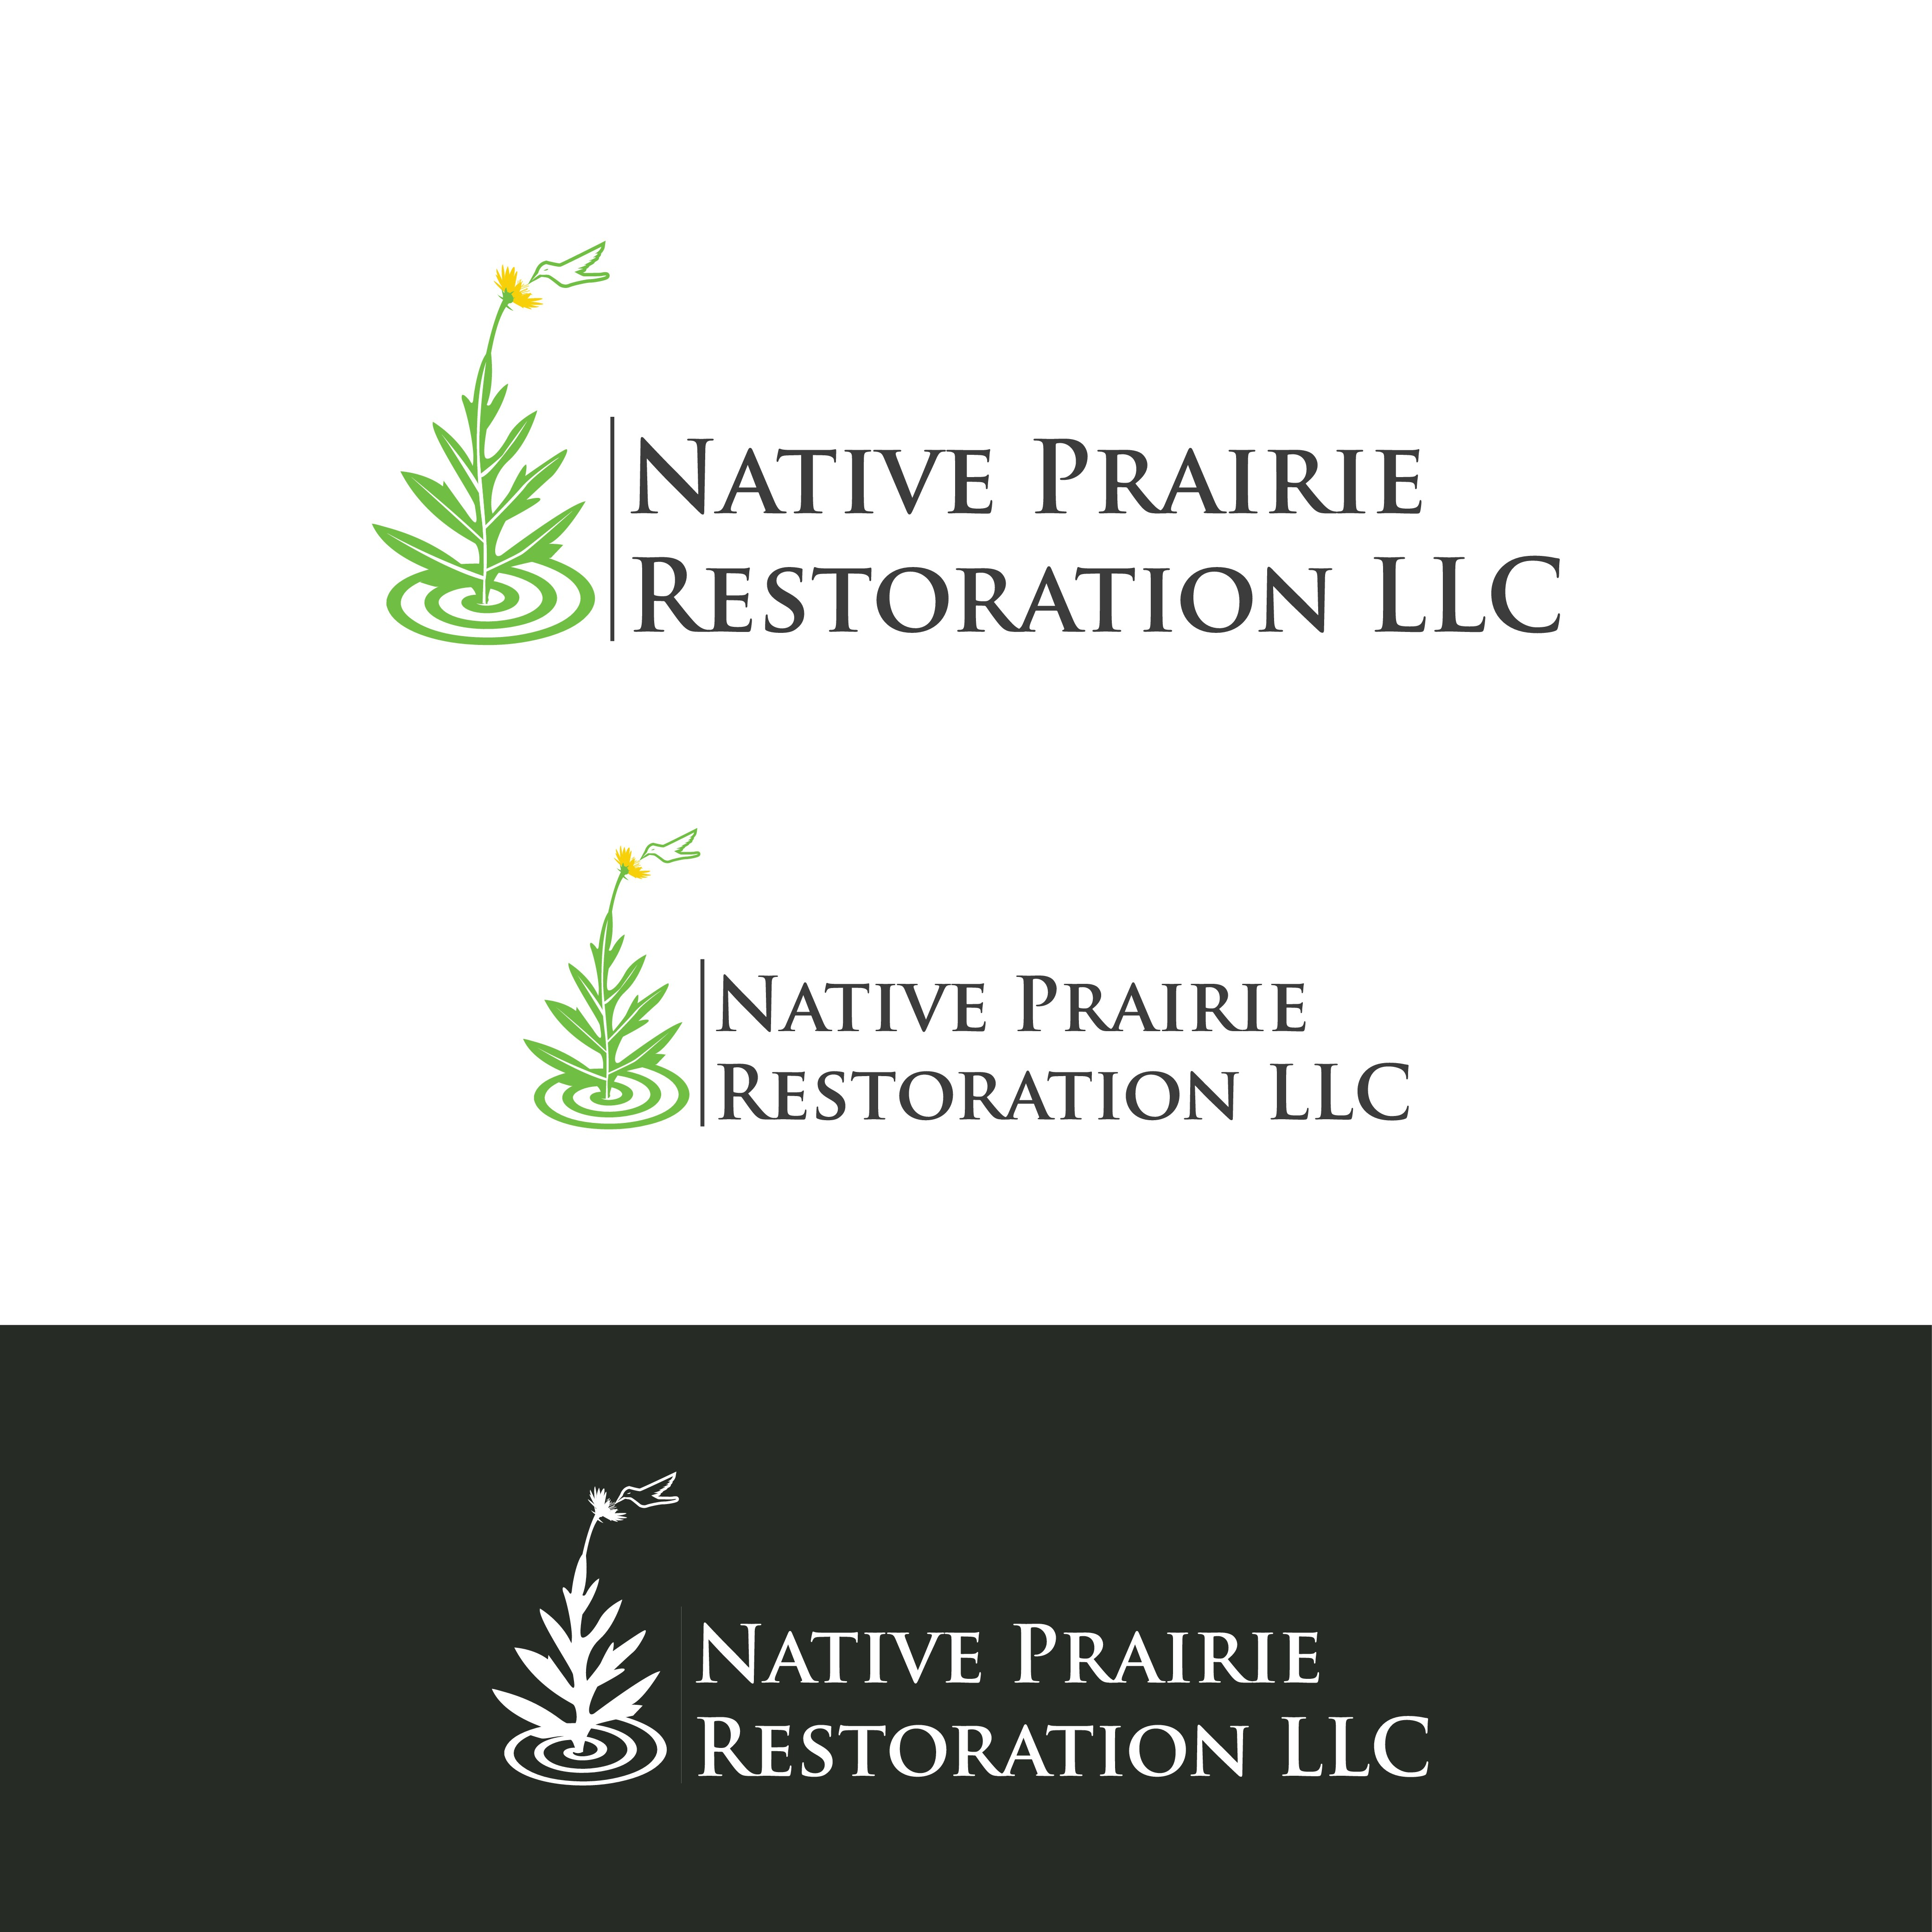 Create a visually appealing, organic logo for our native prairie restoration business.